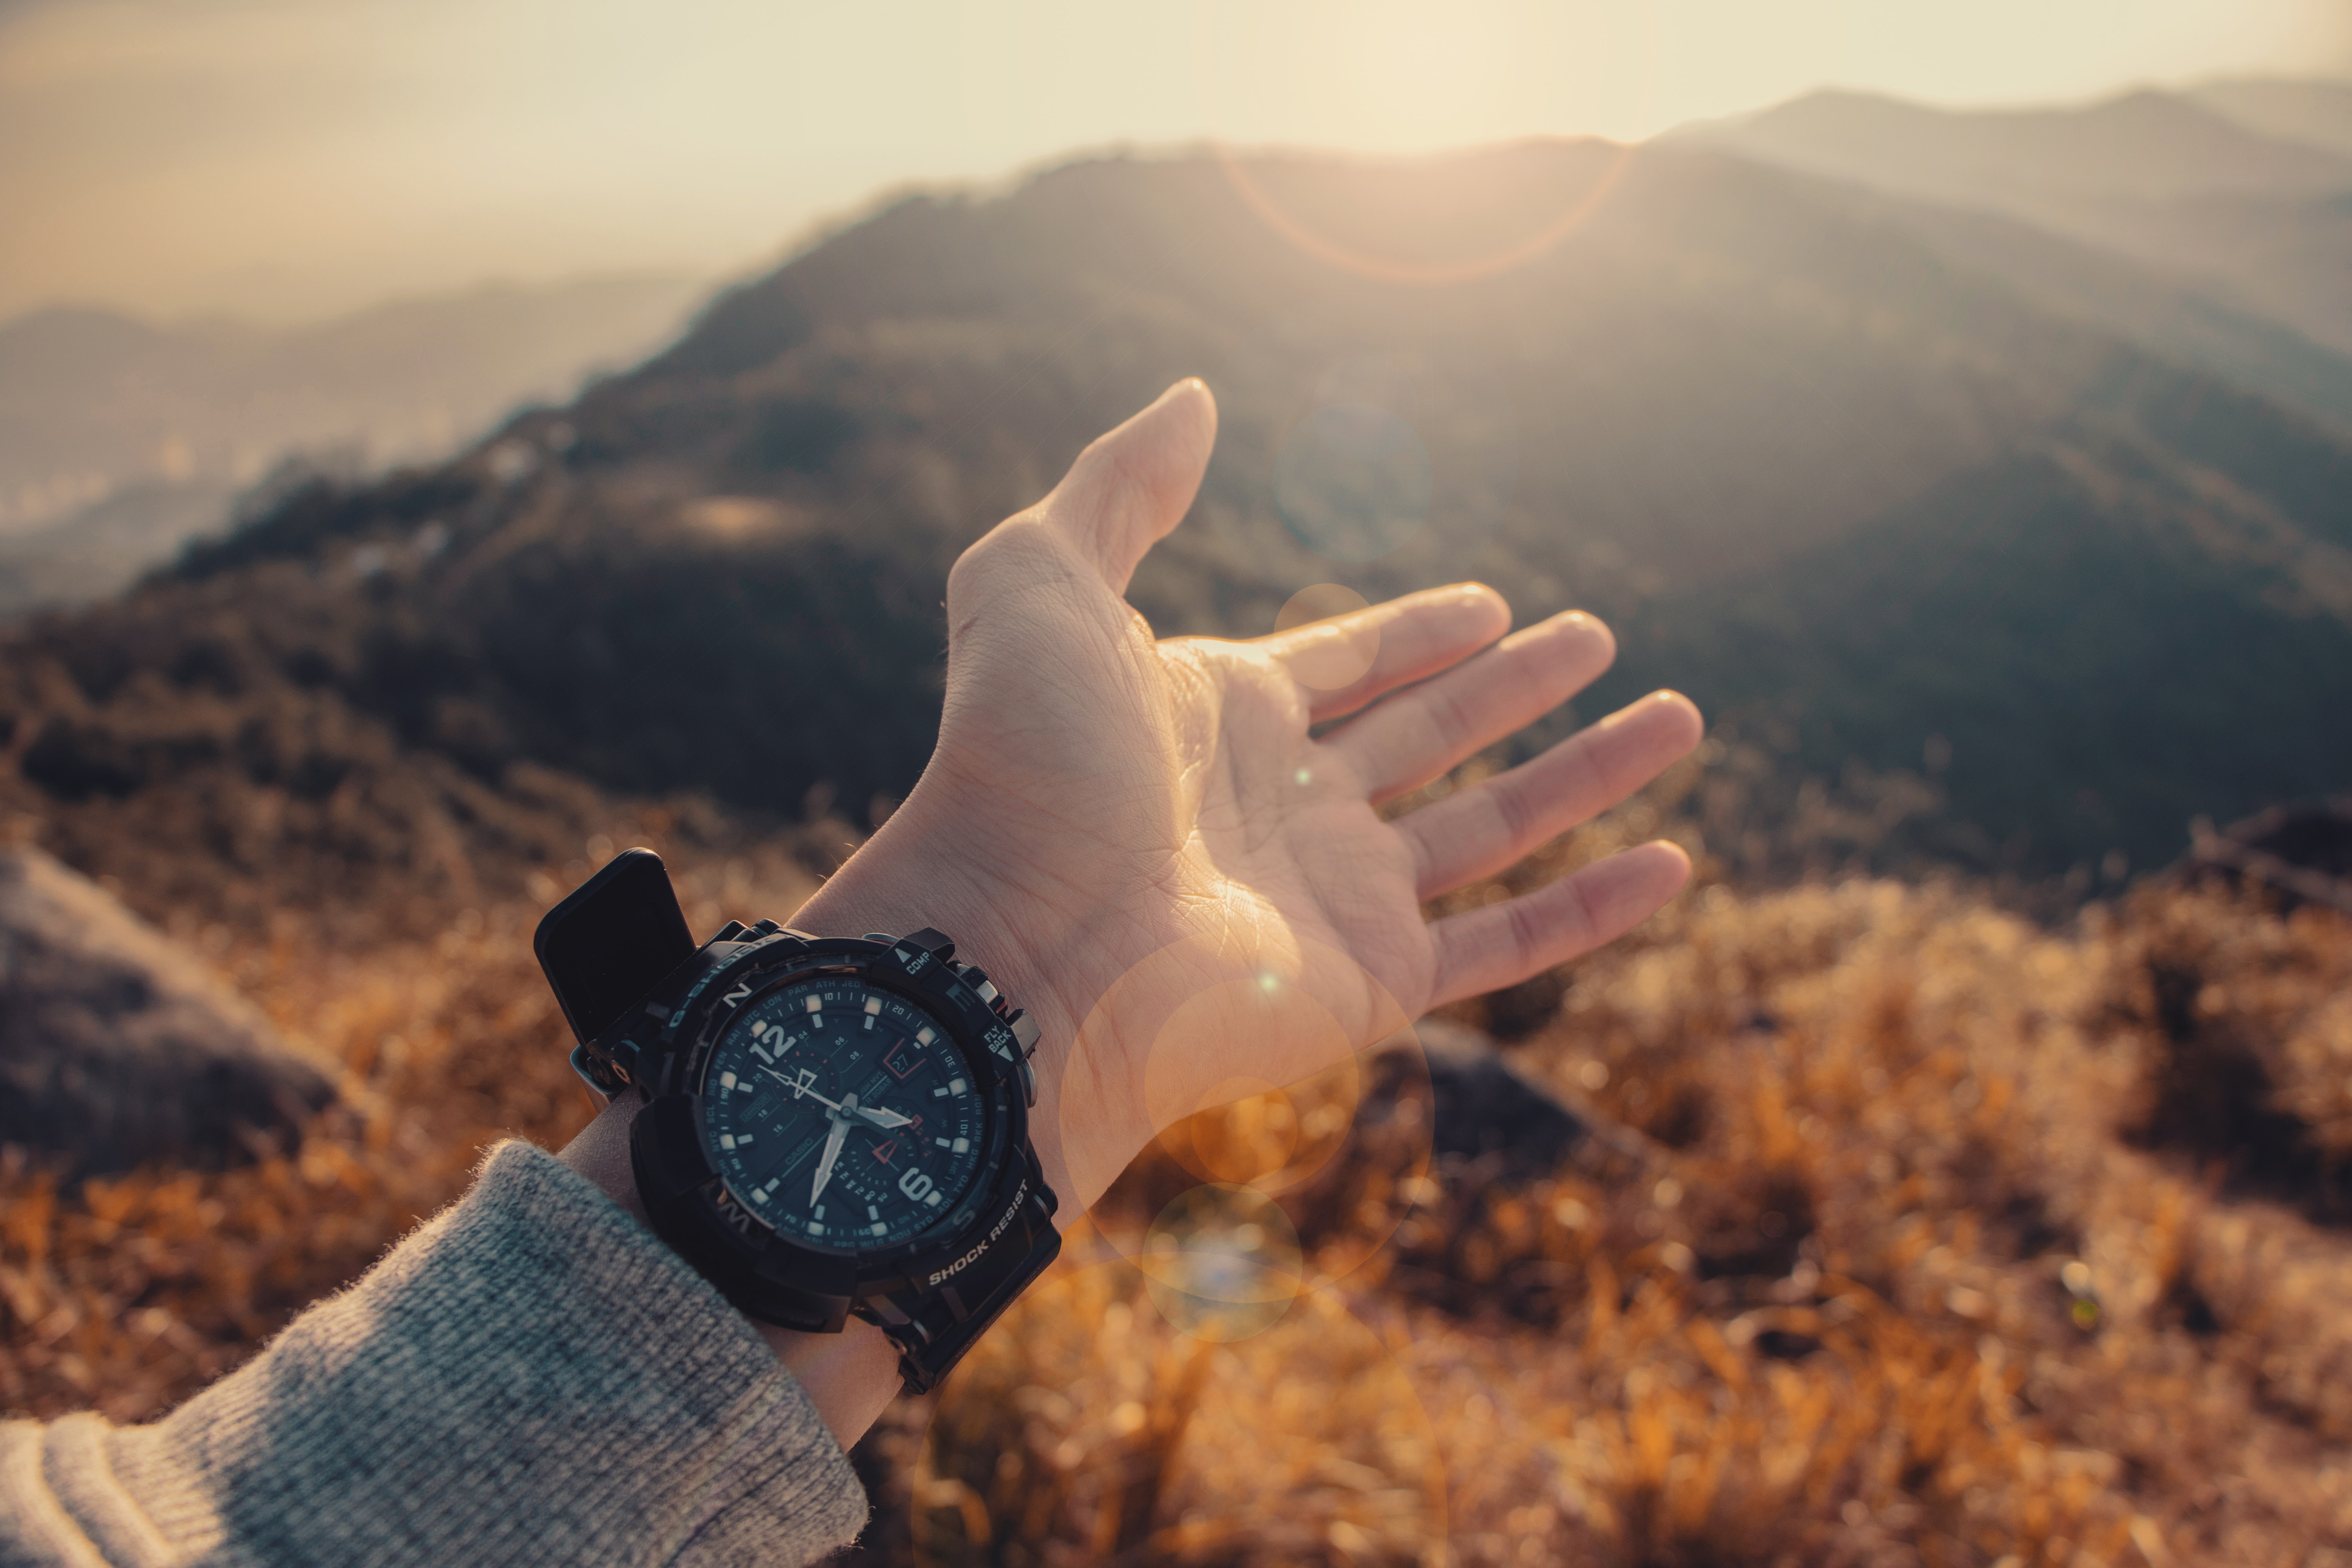 Hand outstretched to a mountain landscape wearing a watch